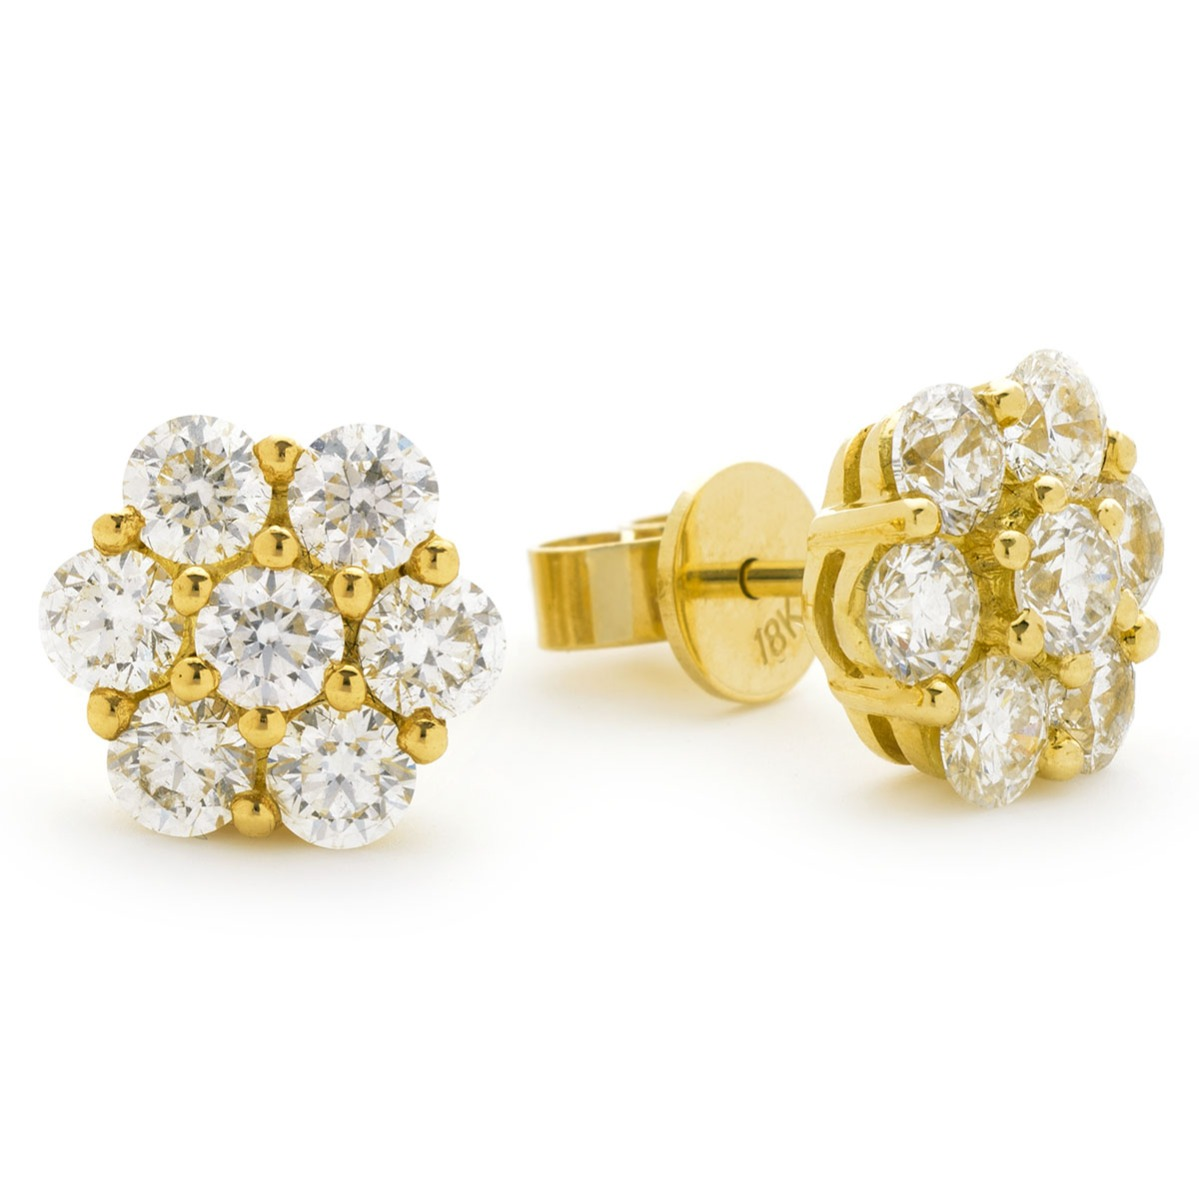 Large Pave Set Diamond Earring Studs